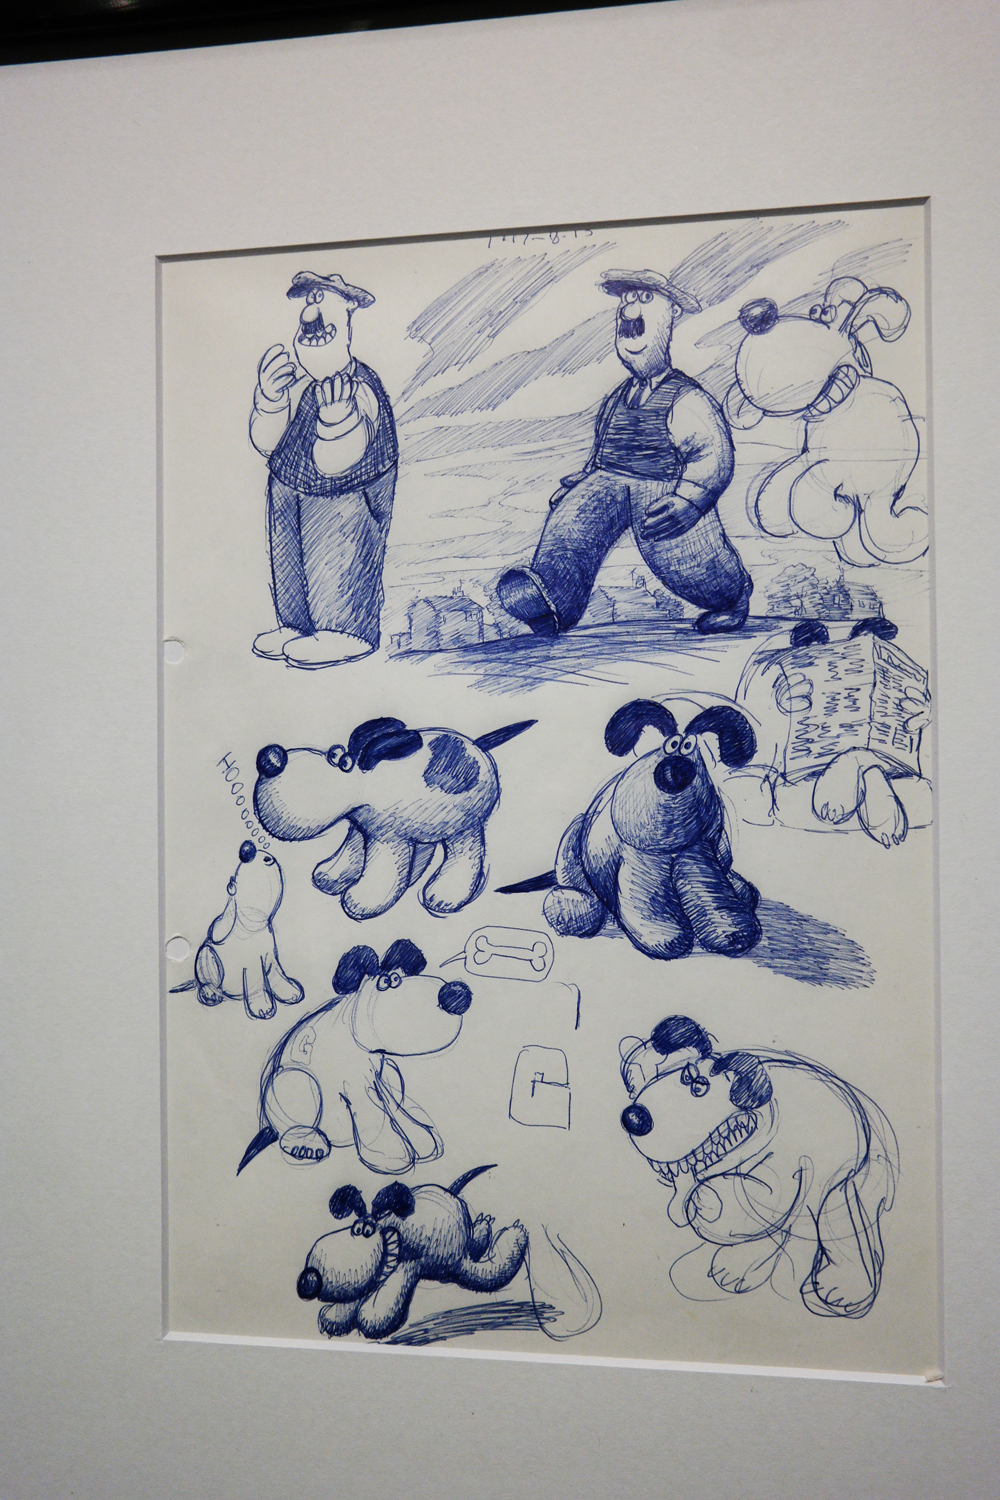 Premiers dessins de recherche early drawings Nick Park Wallace and et Gromit A Grand Day Out 1989 exposition Aardman Studios Musée Art Lusique Paris animation movie film